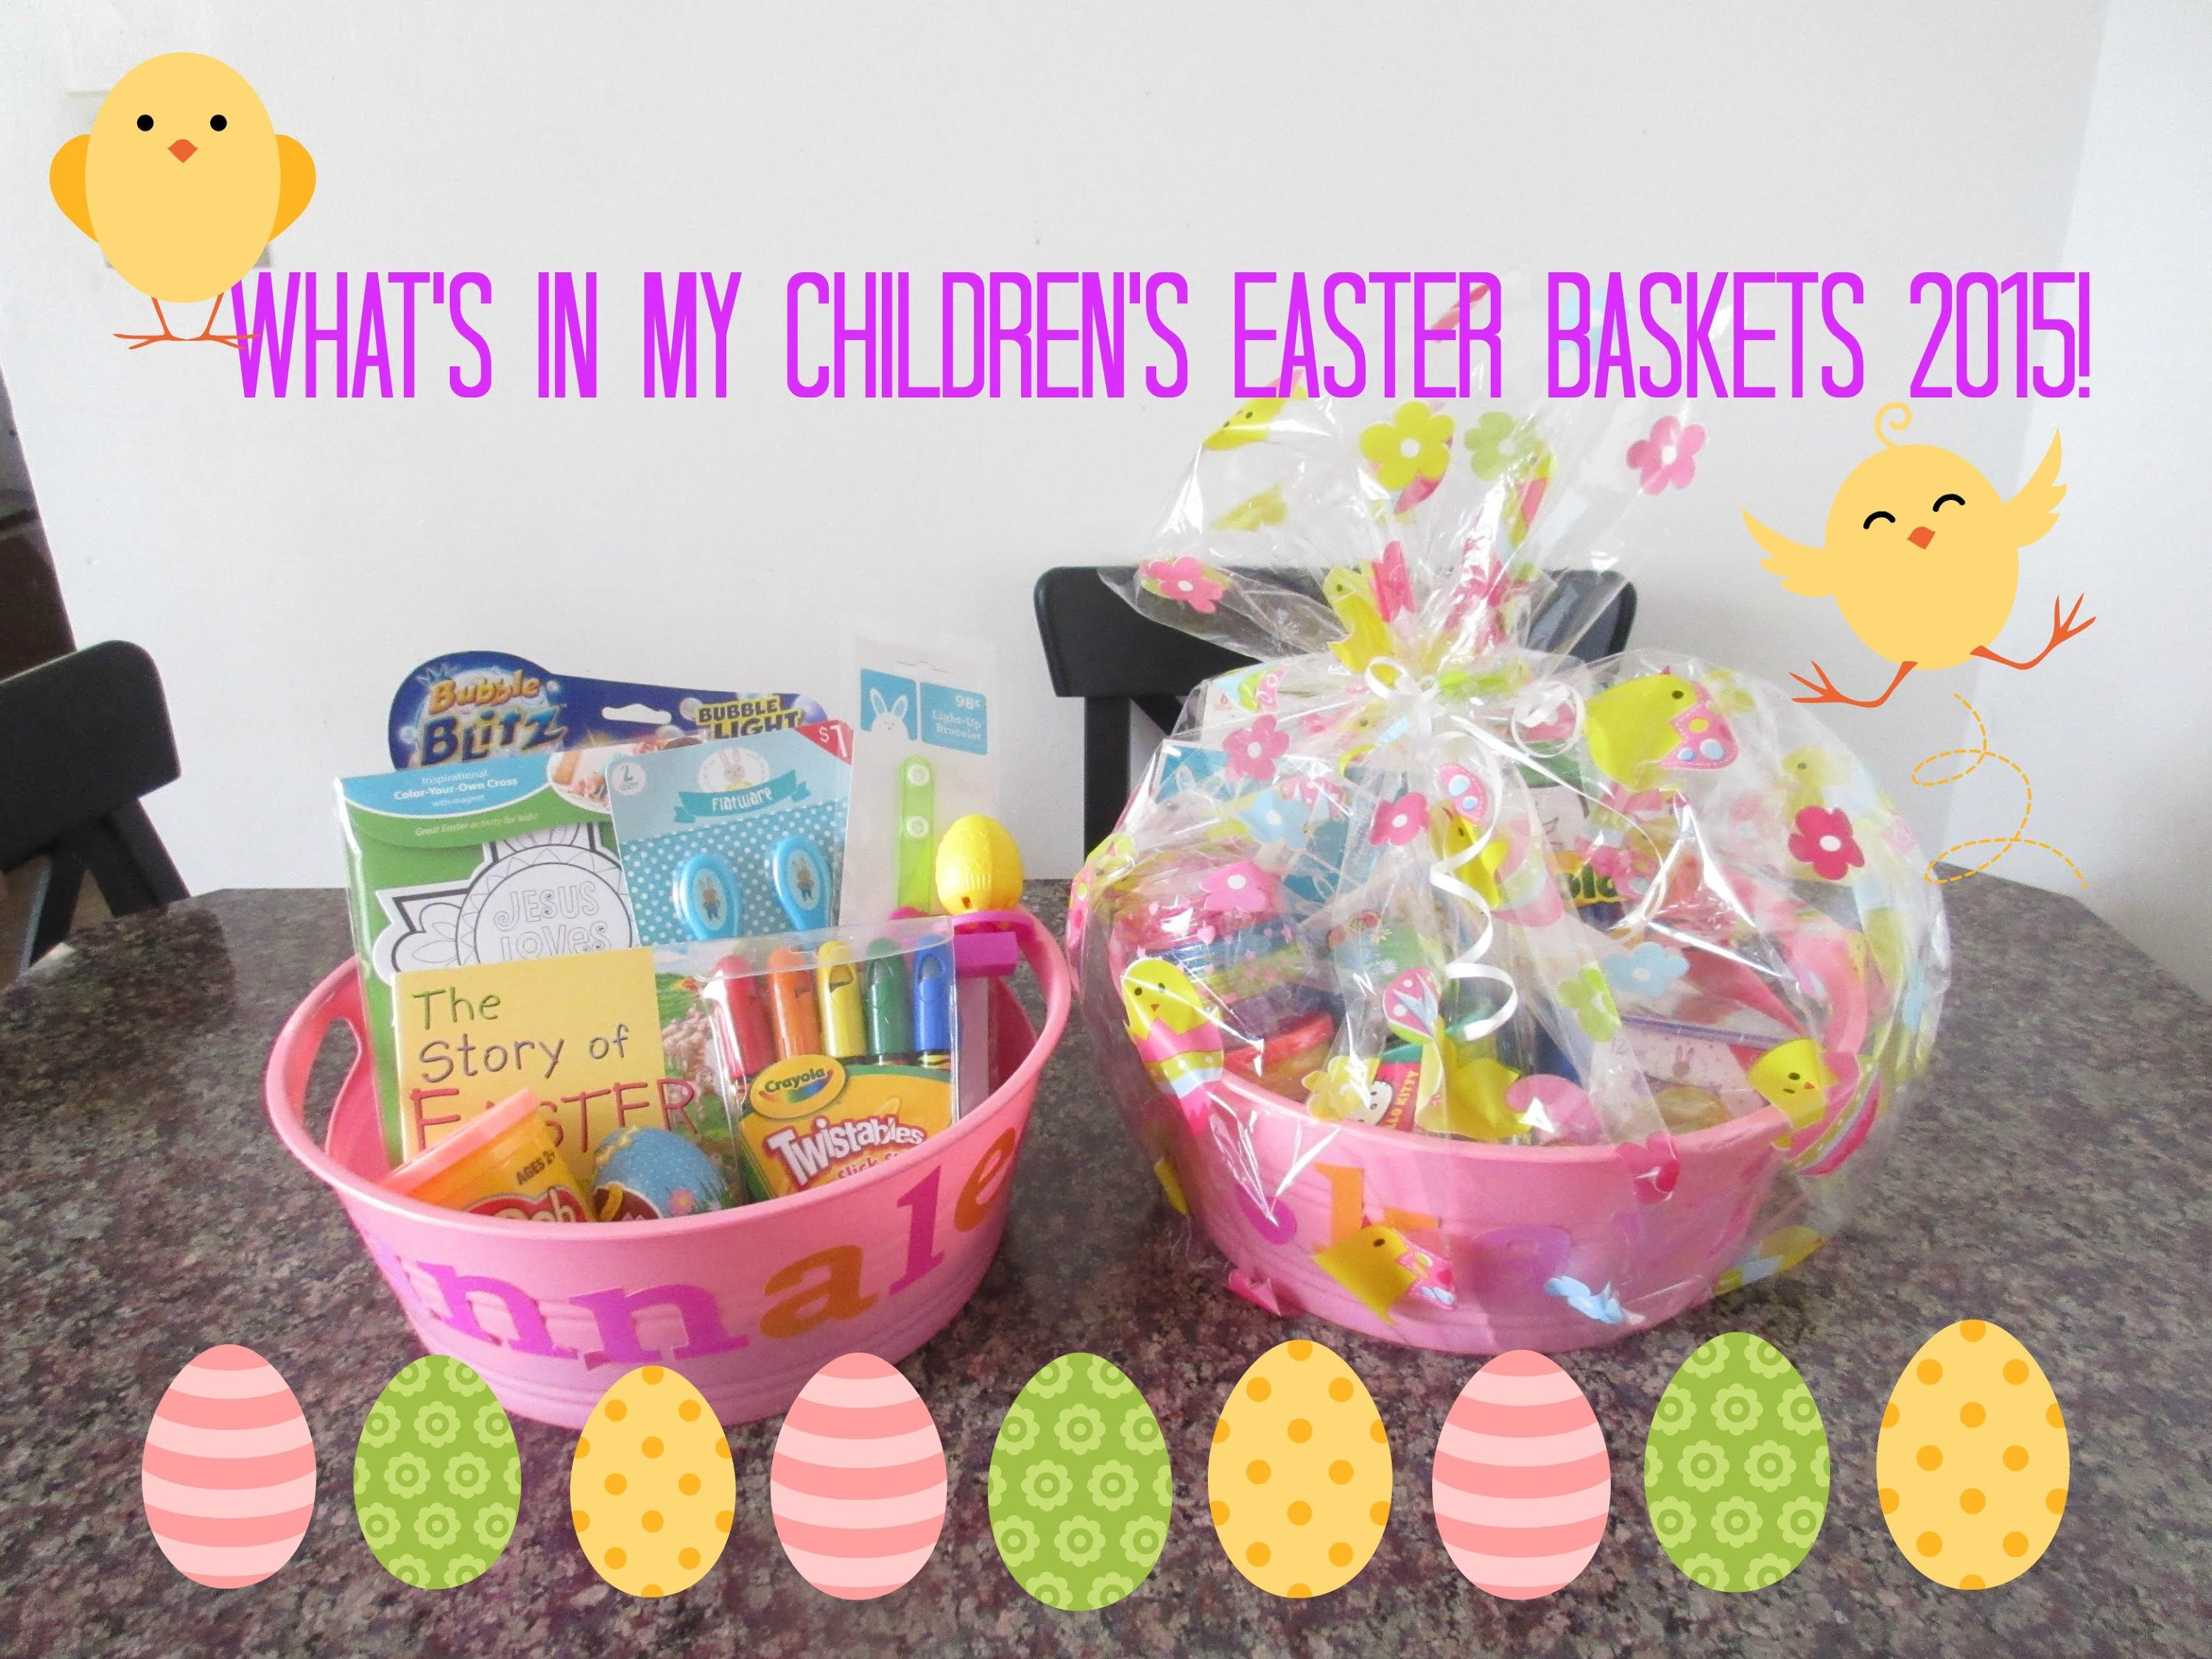 Easter gifts for toddlers uk choice image gift and gift ideas sample cheap easter basket ideas 15 month old 8 year old girls cheap easter basket ideas 15 negle Choice Image